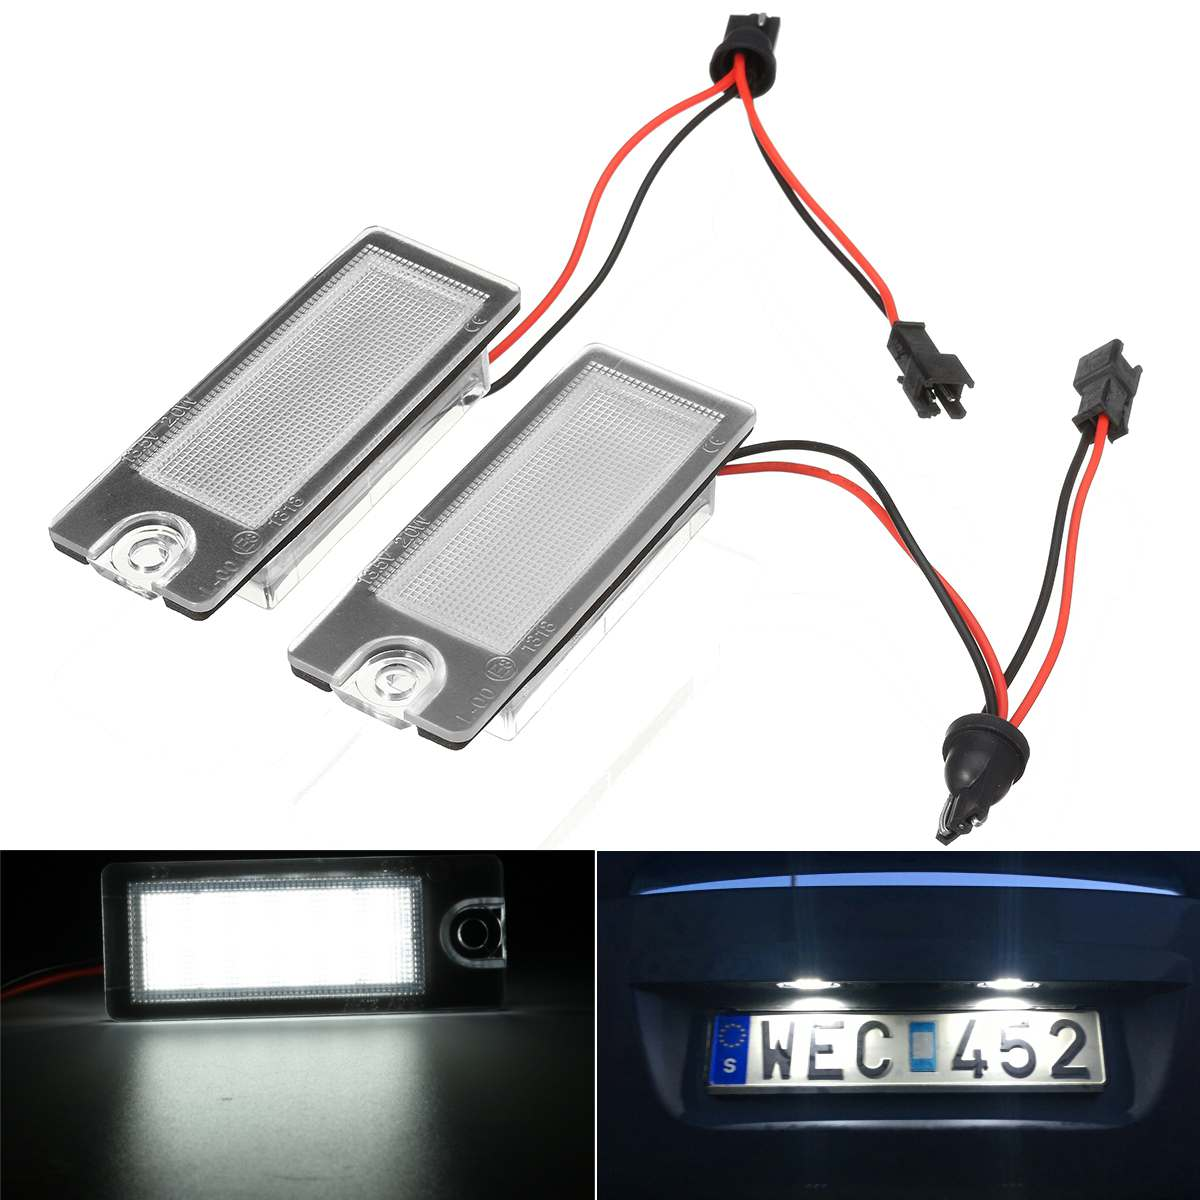 Pair Rear Licence Number Plate LED Light White For <font><b>Volvo</b></font> V70 CX70 S60 S80 <font><b>XC90</b></font> 2001 2002 <font><b>2003</b></font> 2004 2005 2006 2007 image